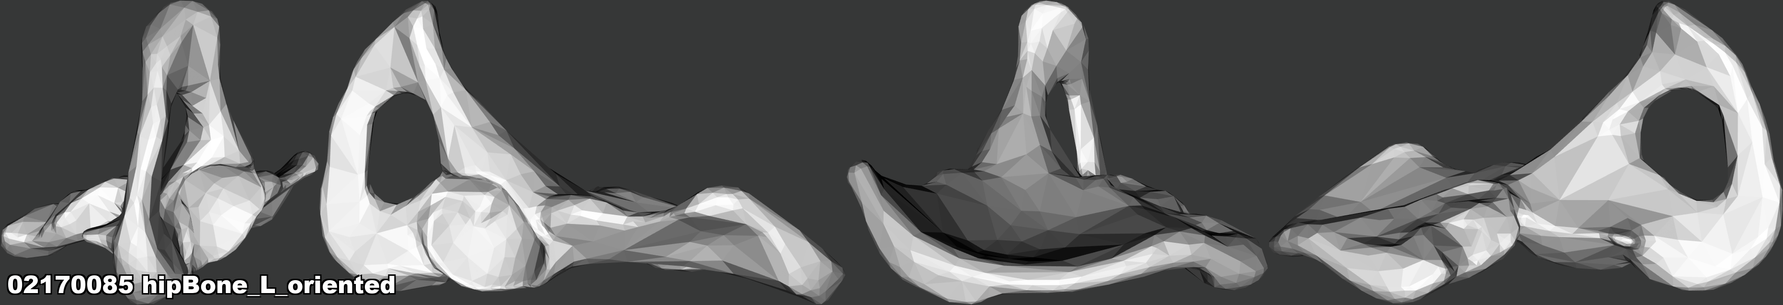 02170085 hipBone_L_oriented.png